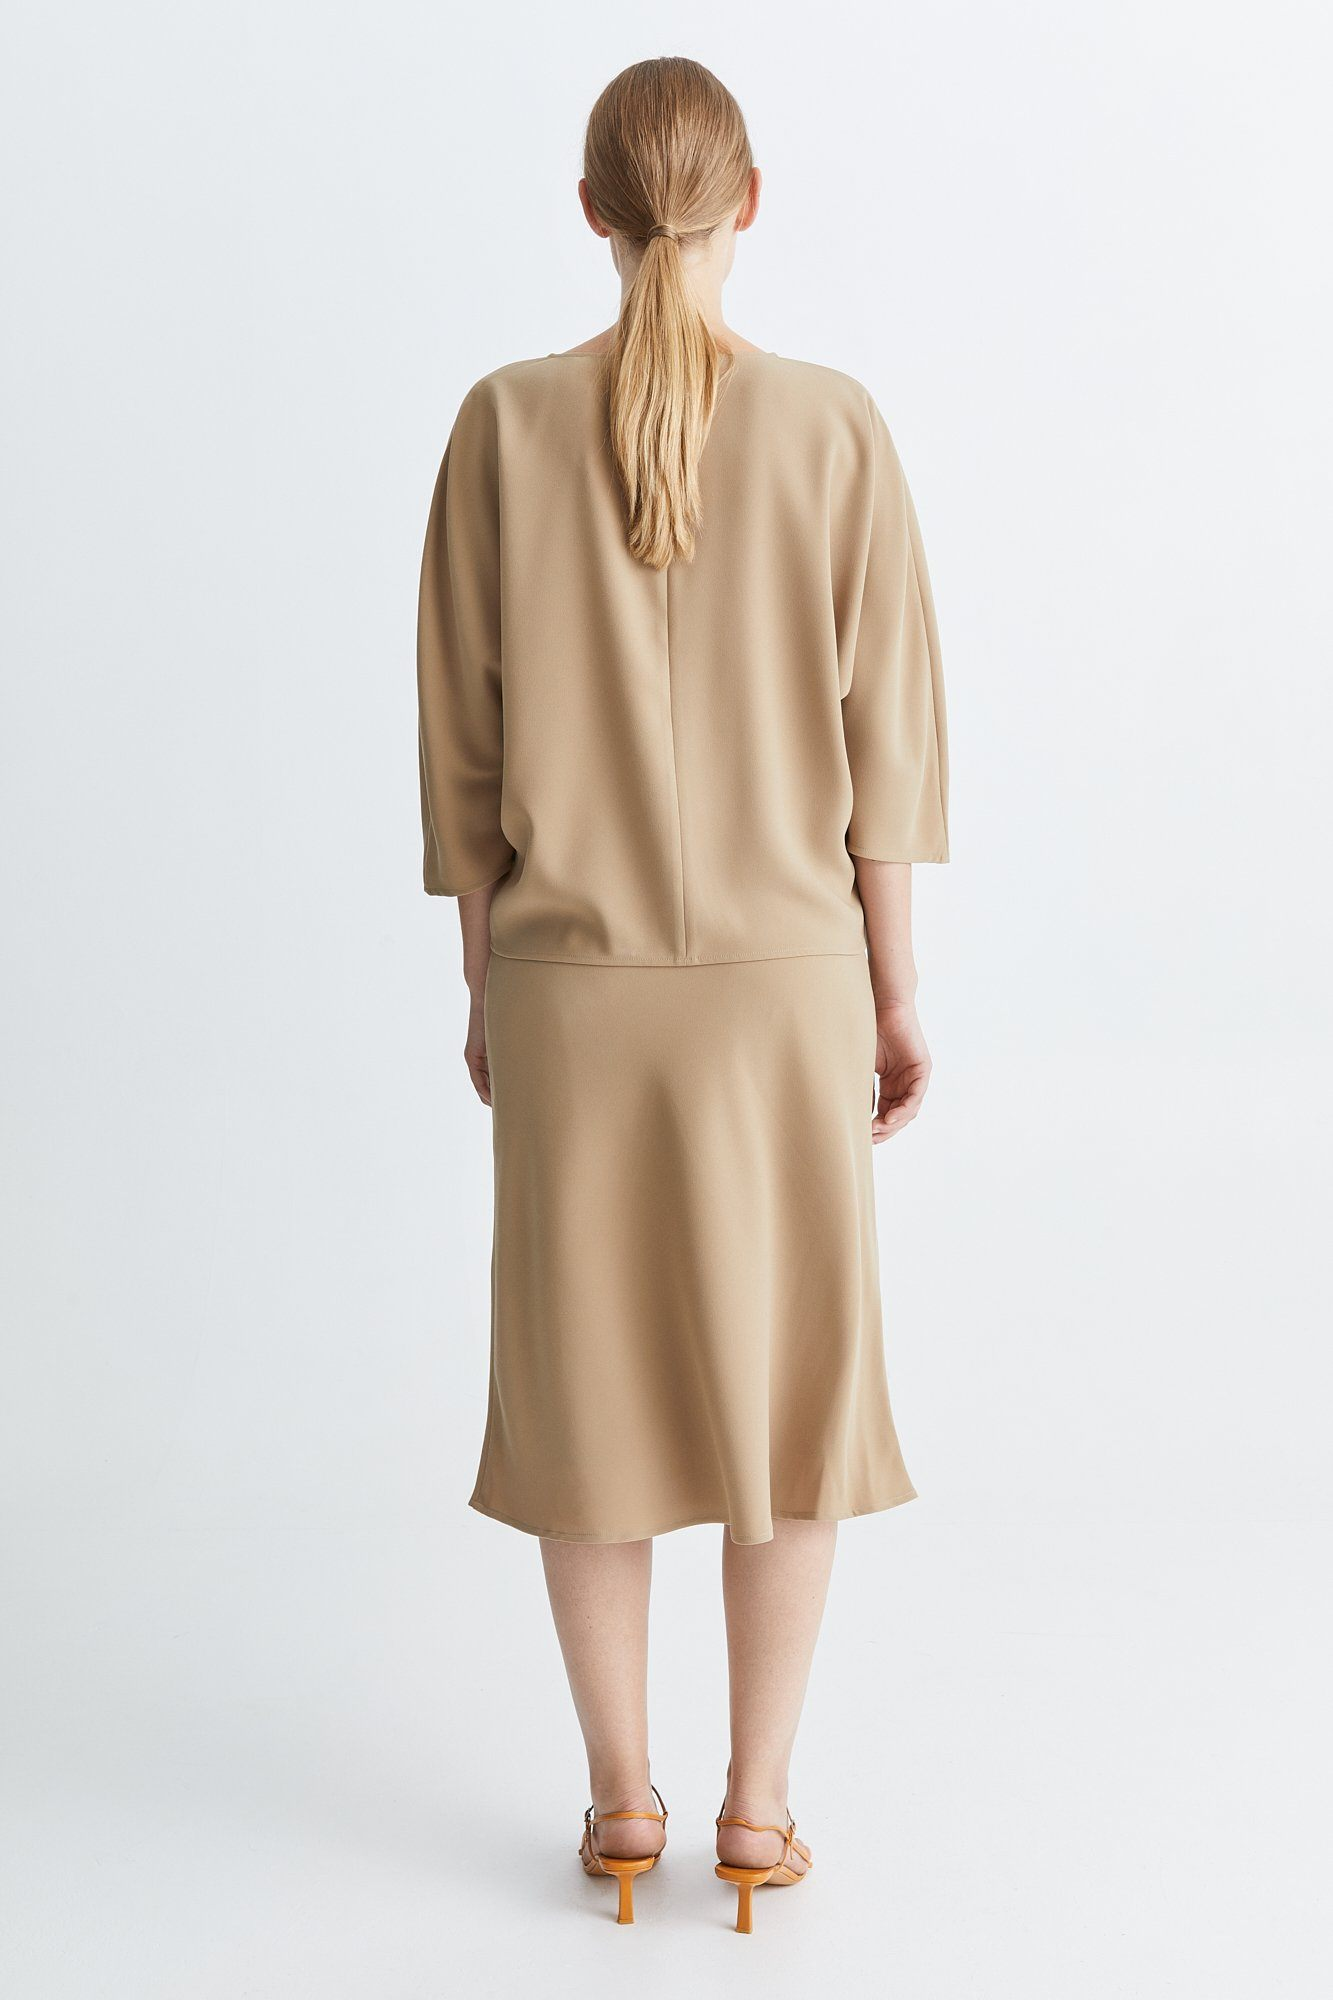 BRIDGE SKIRT - BEIGE Skirt Stylein